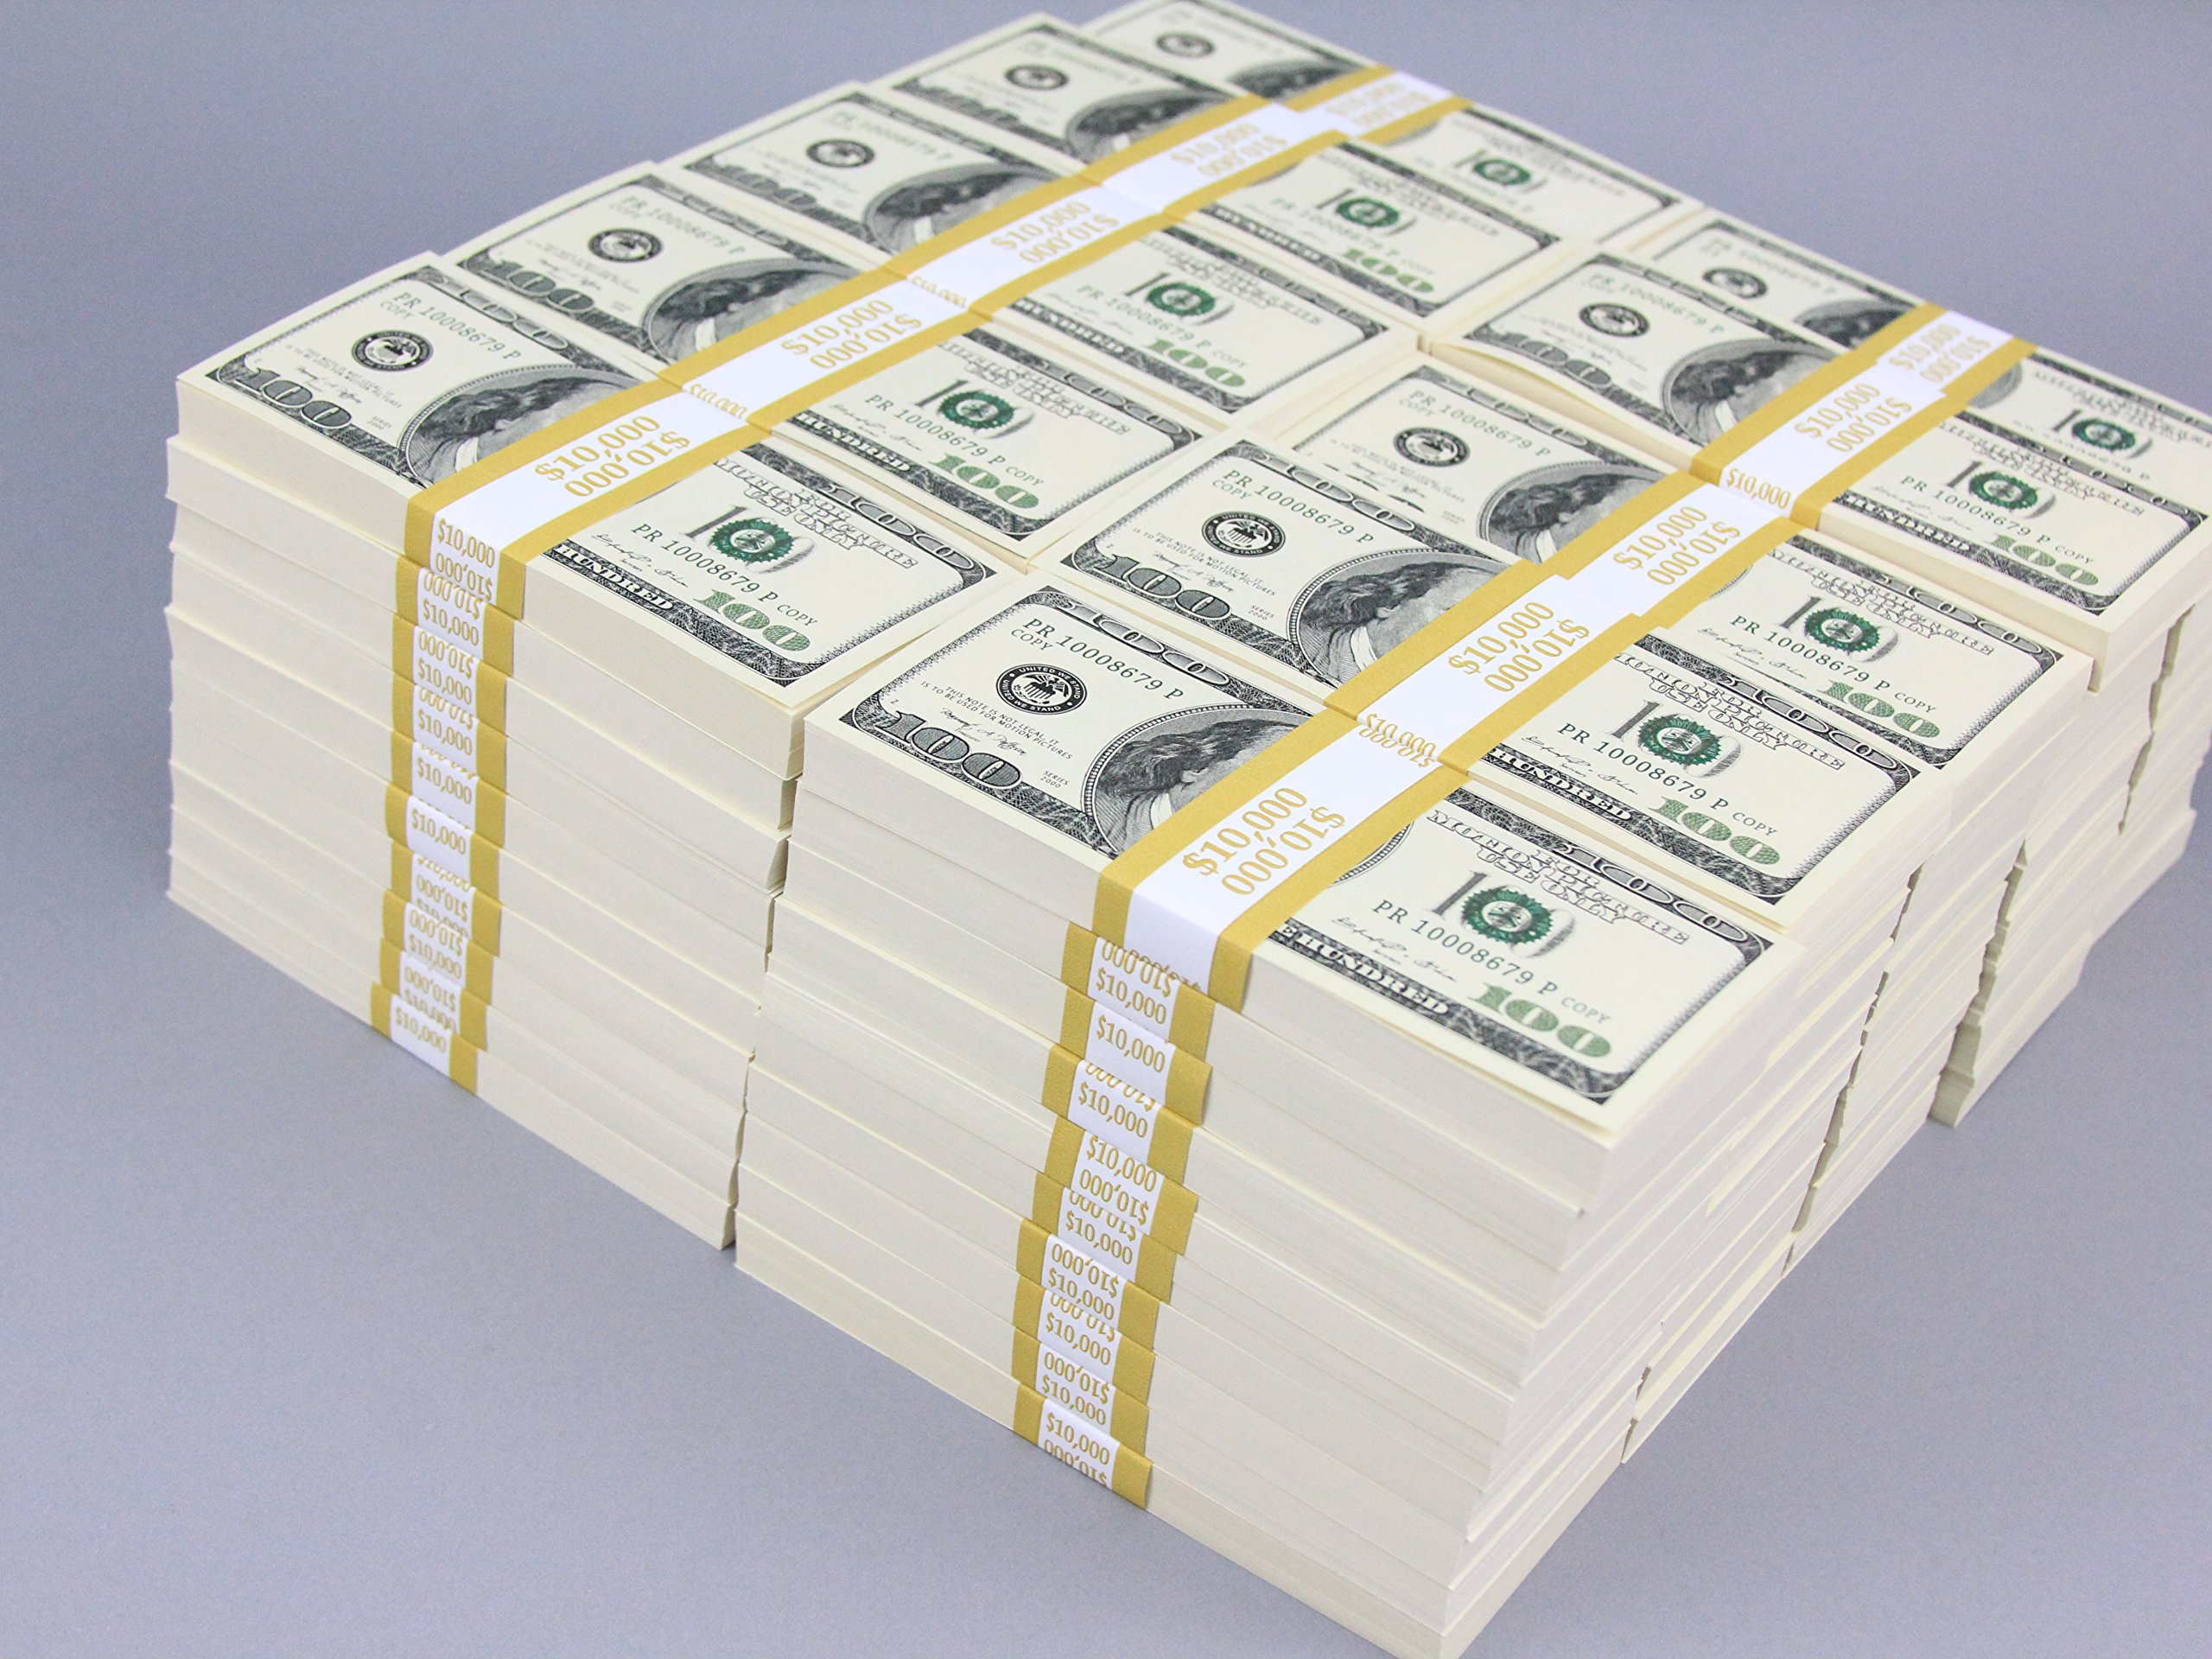 PROP MONEY Real Looking Copy $100s Pack - BLANK FILLERS Total ONE MILLION ($1,000,000) for Movie, TV, Videos, Advertising & Novelty